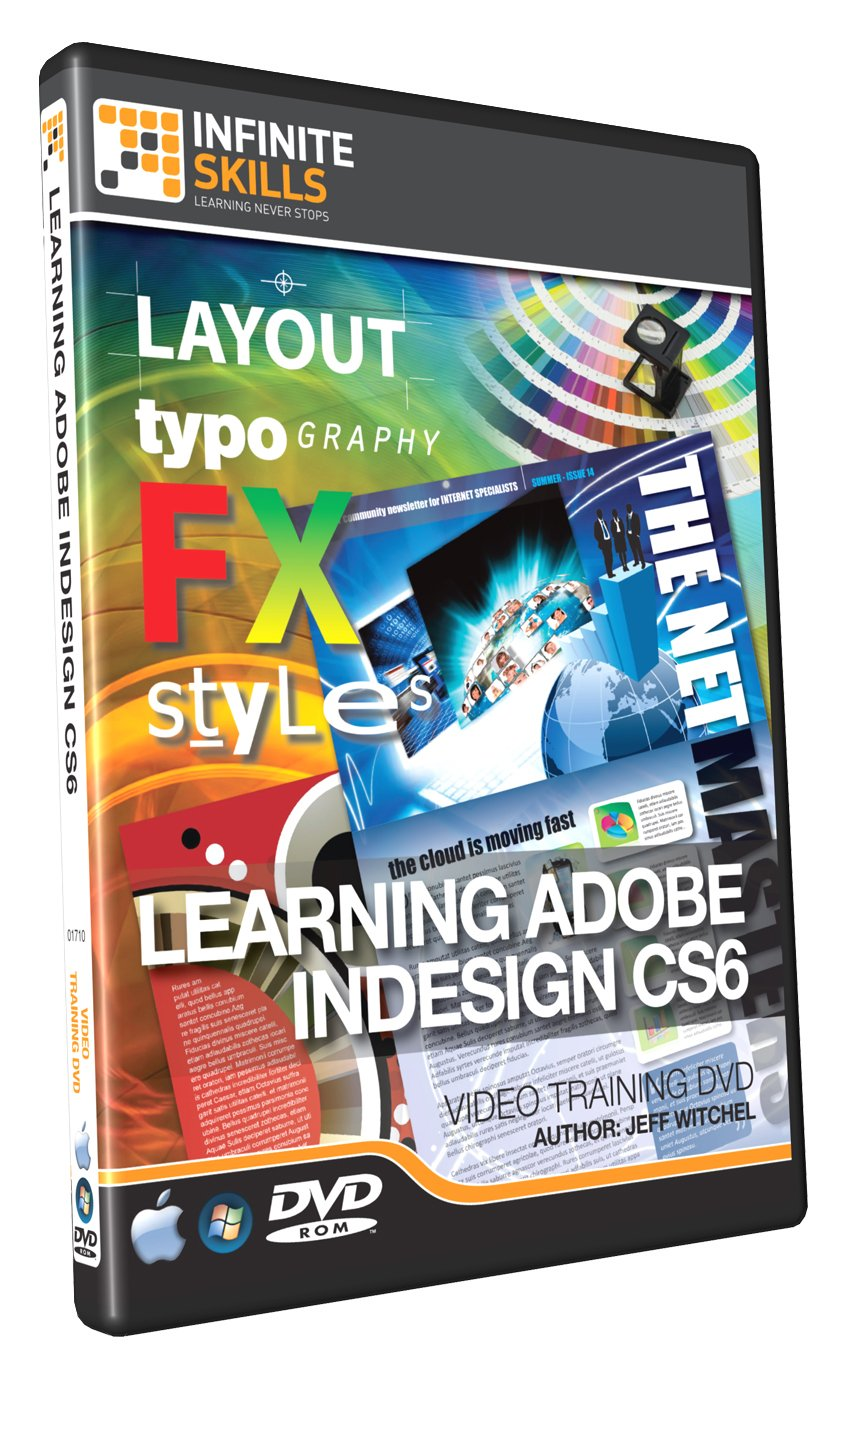 Learning Adobe InDesign CS6 - Training DVD - Tutorial Video